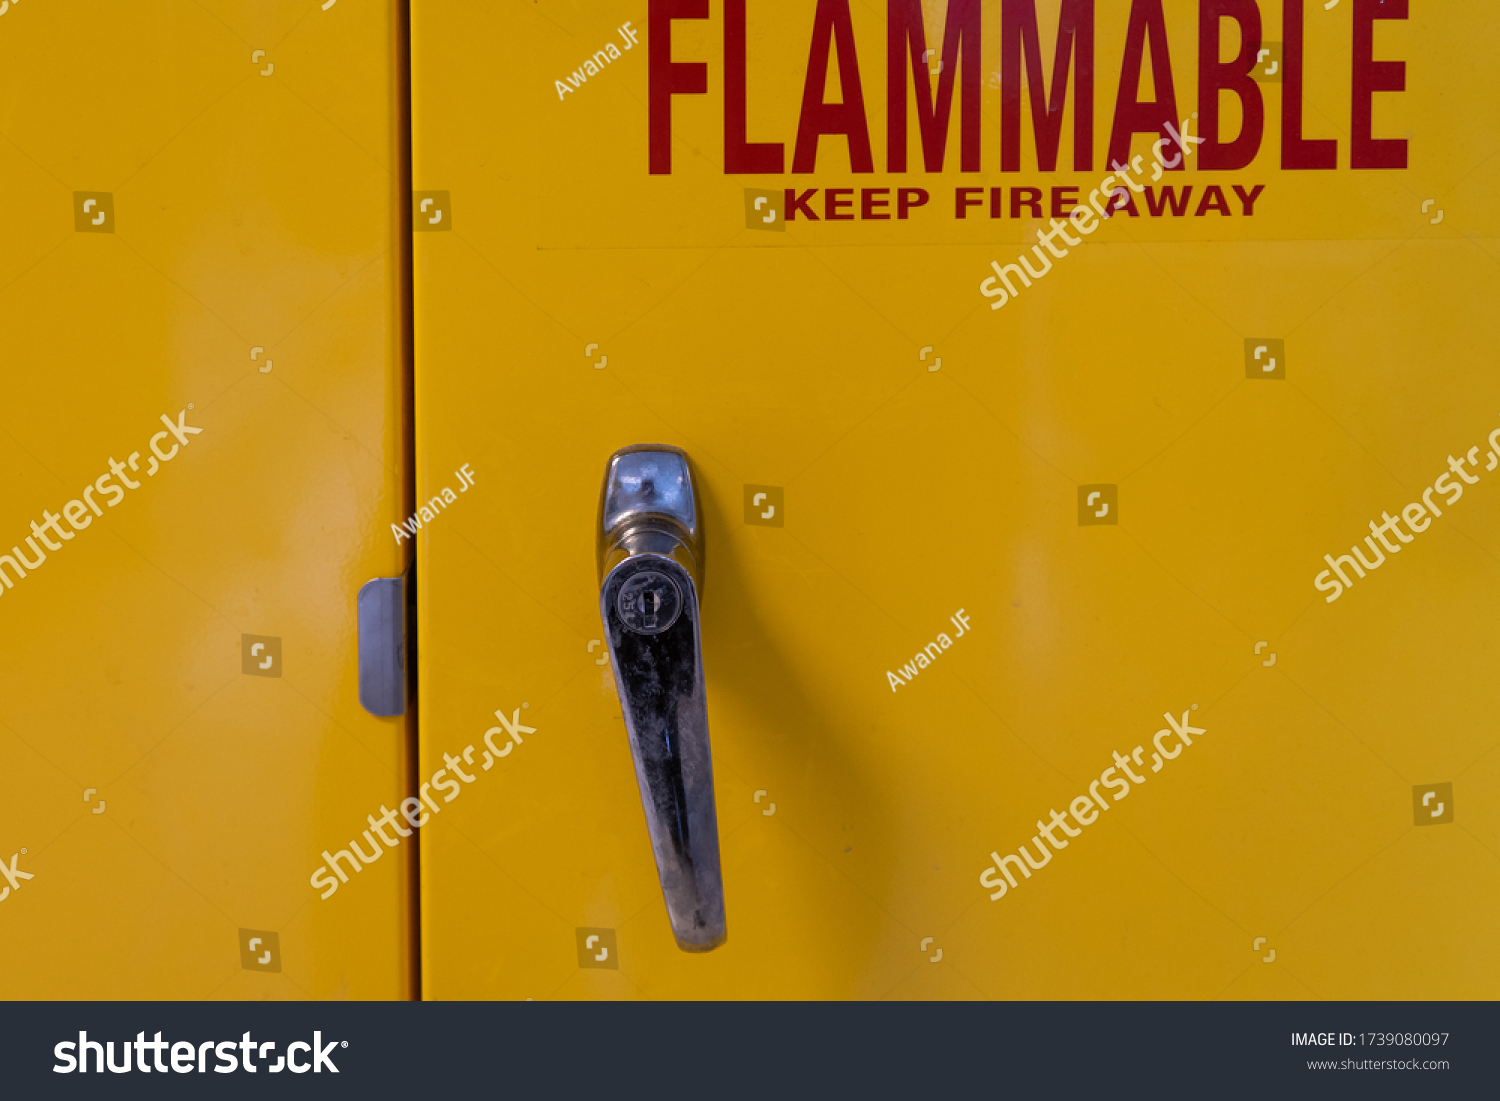 stock-photo-yellow-doors-of-a-flammable-